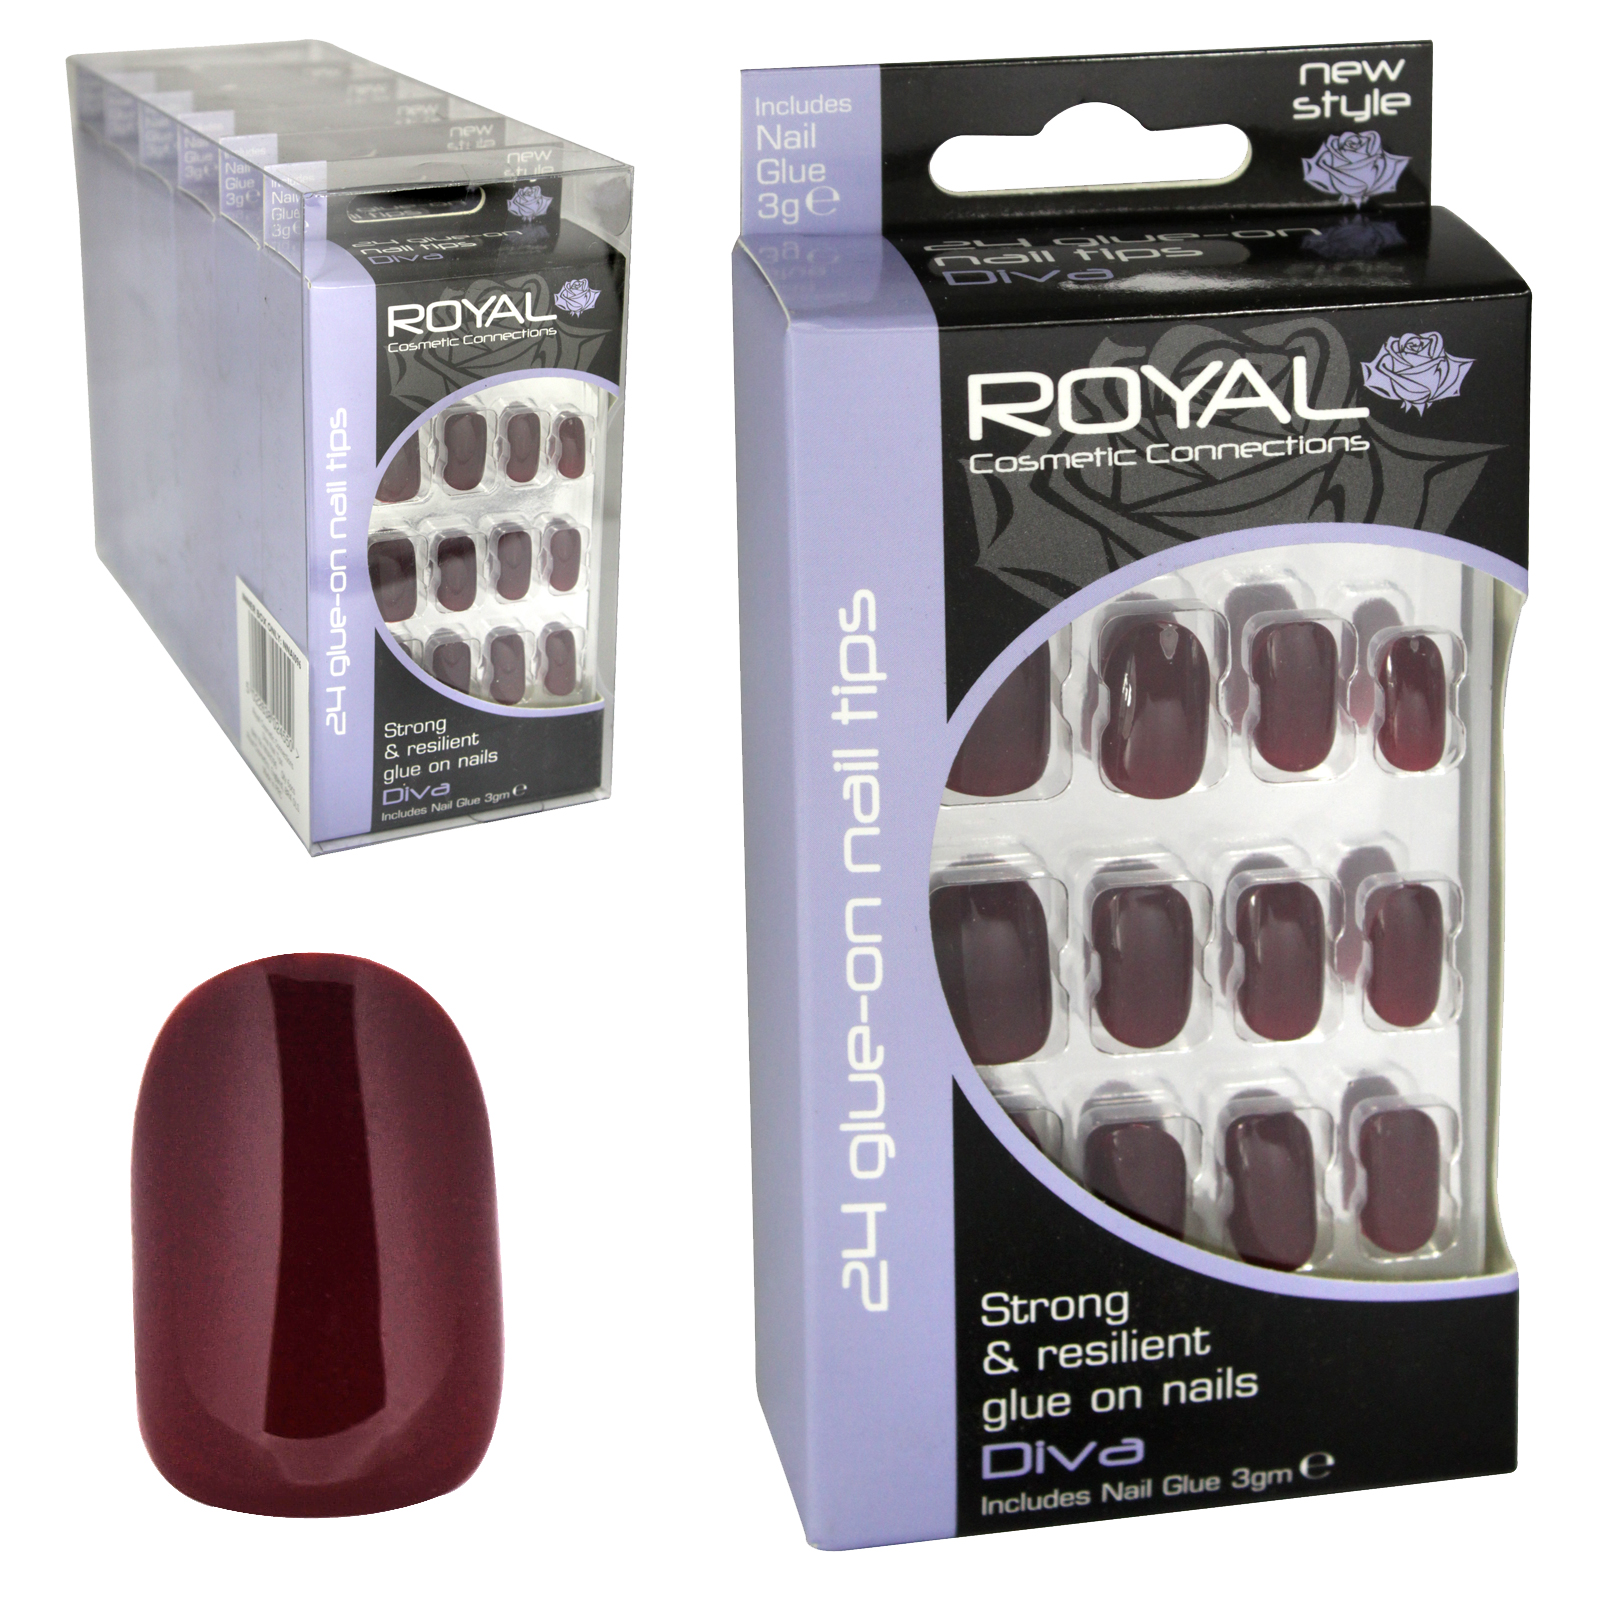 ROYAL 24 NAIL TIPS+GLUE DIVA X6